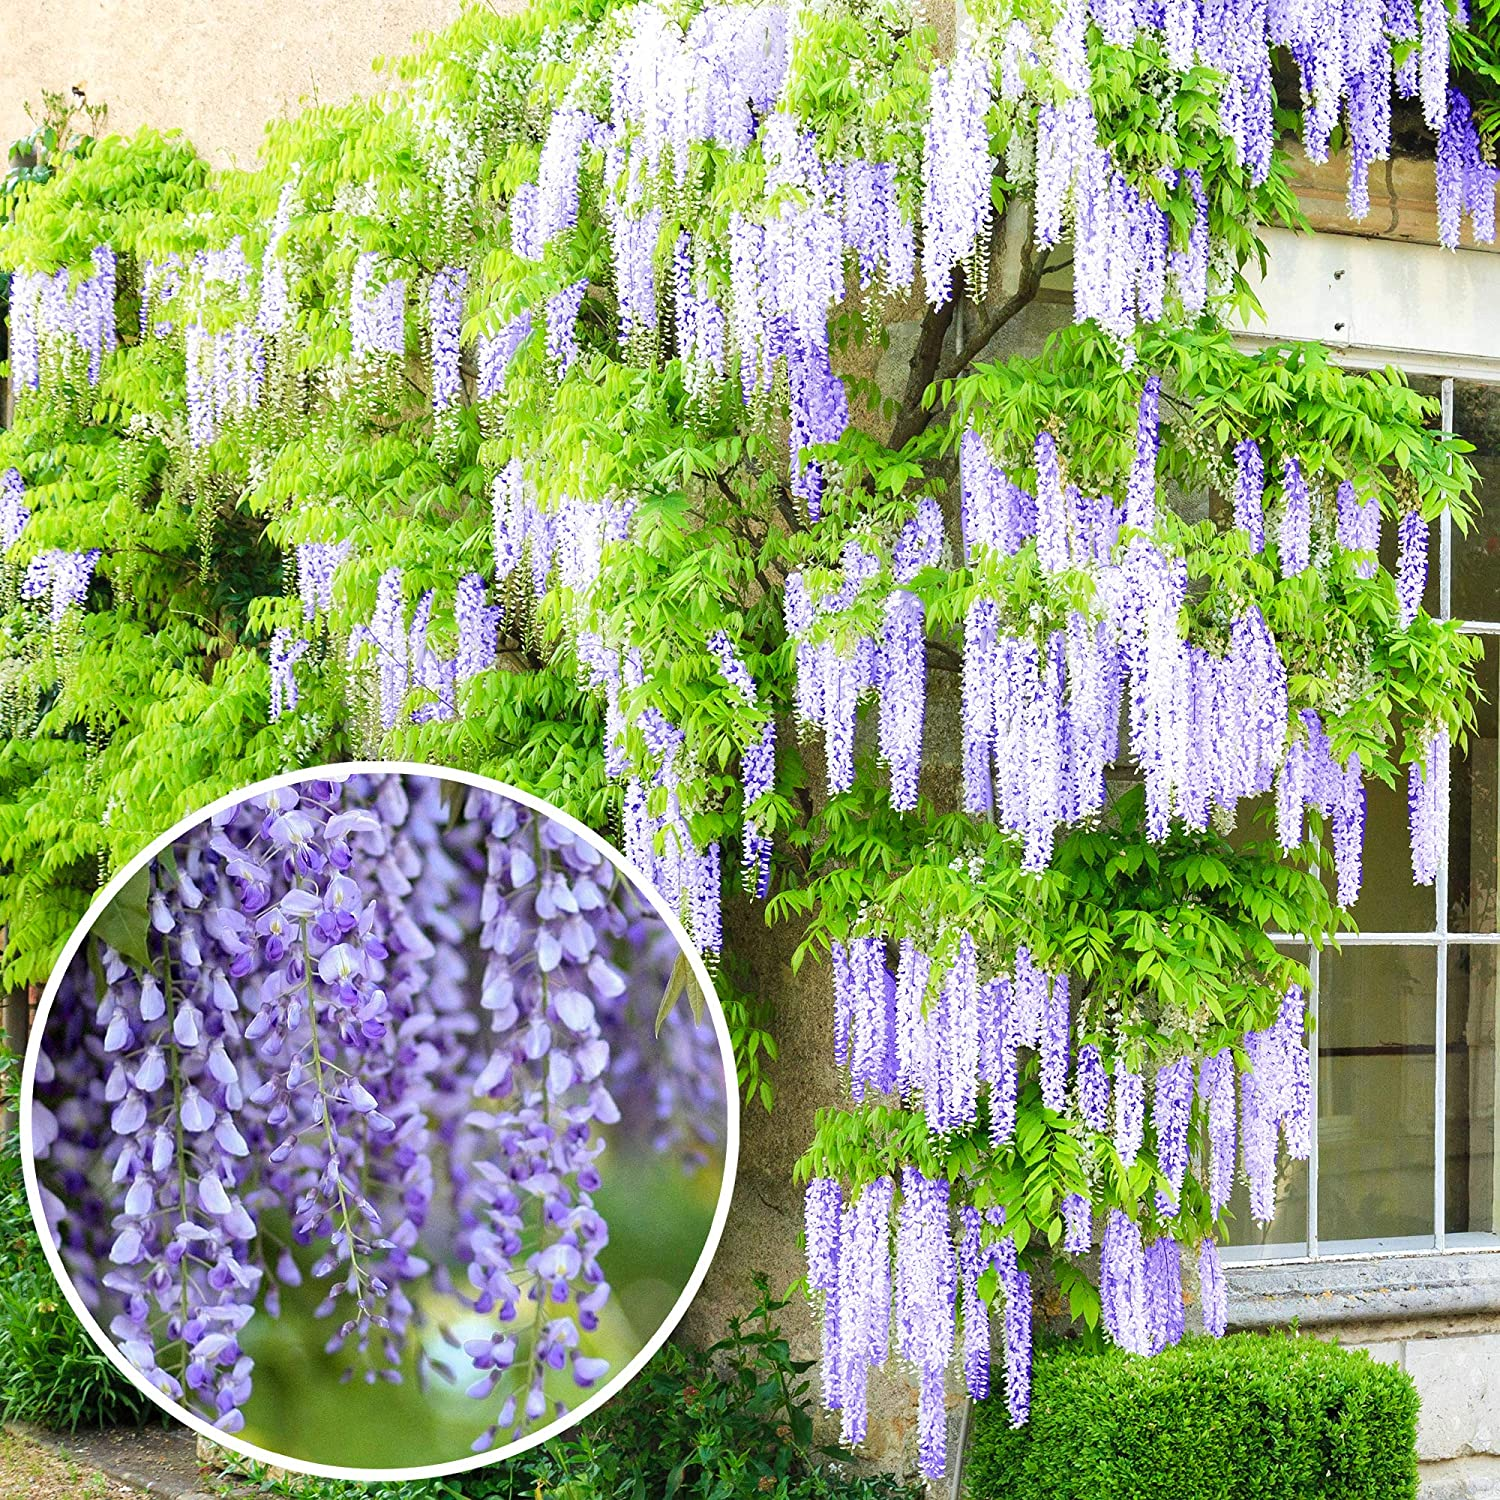 Wisteria Sinensis Blue Flowering Deciduous Hardy Climbing Garden Shrub Plant 9cm 20 30cm Amazon Co Uk Garden Outdoors